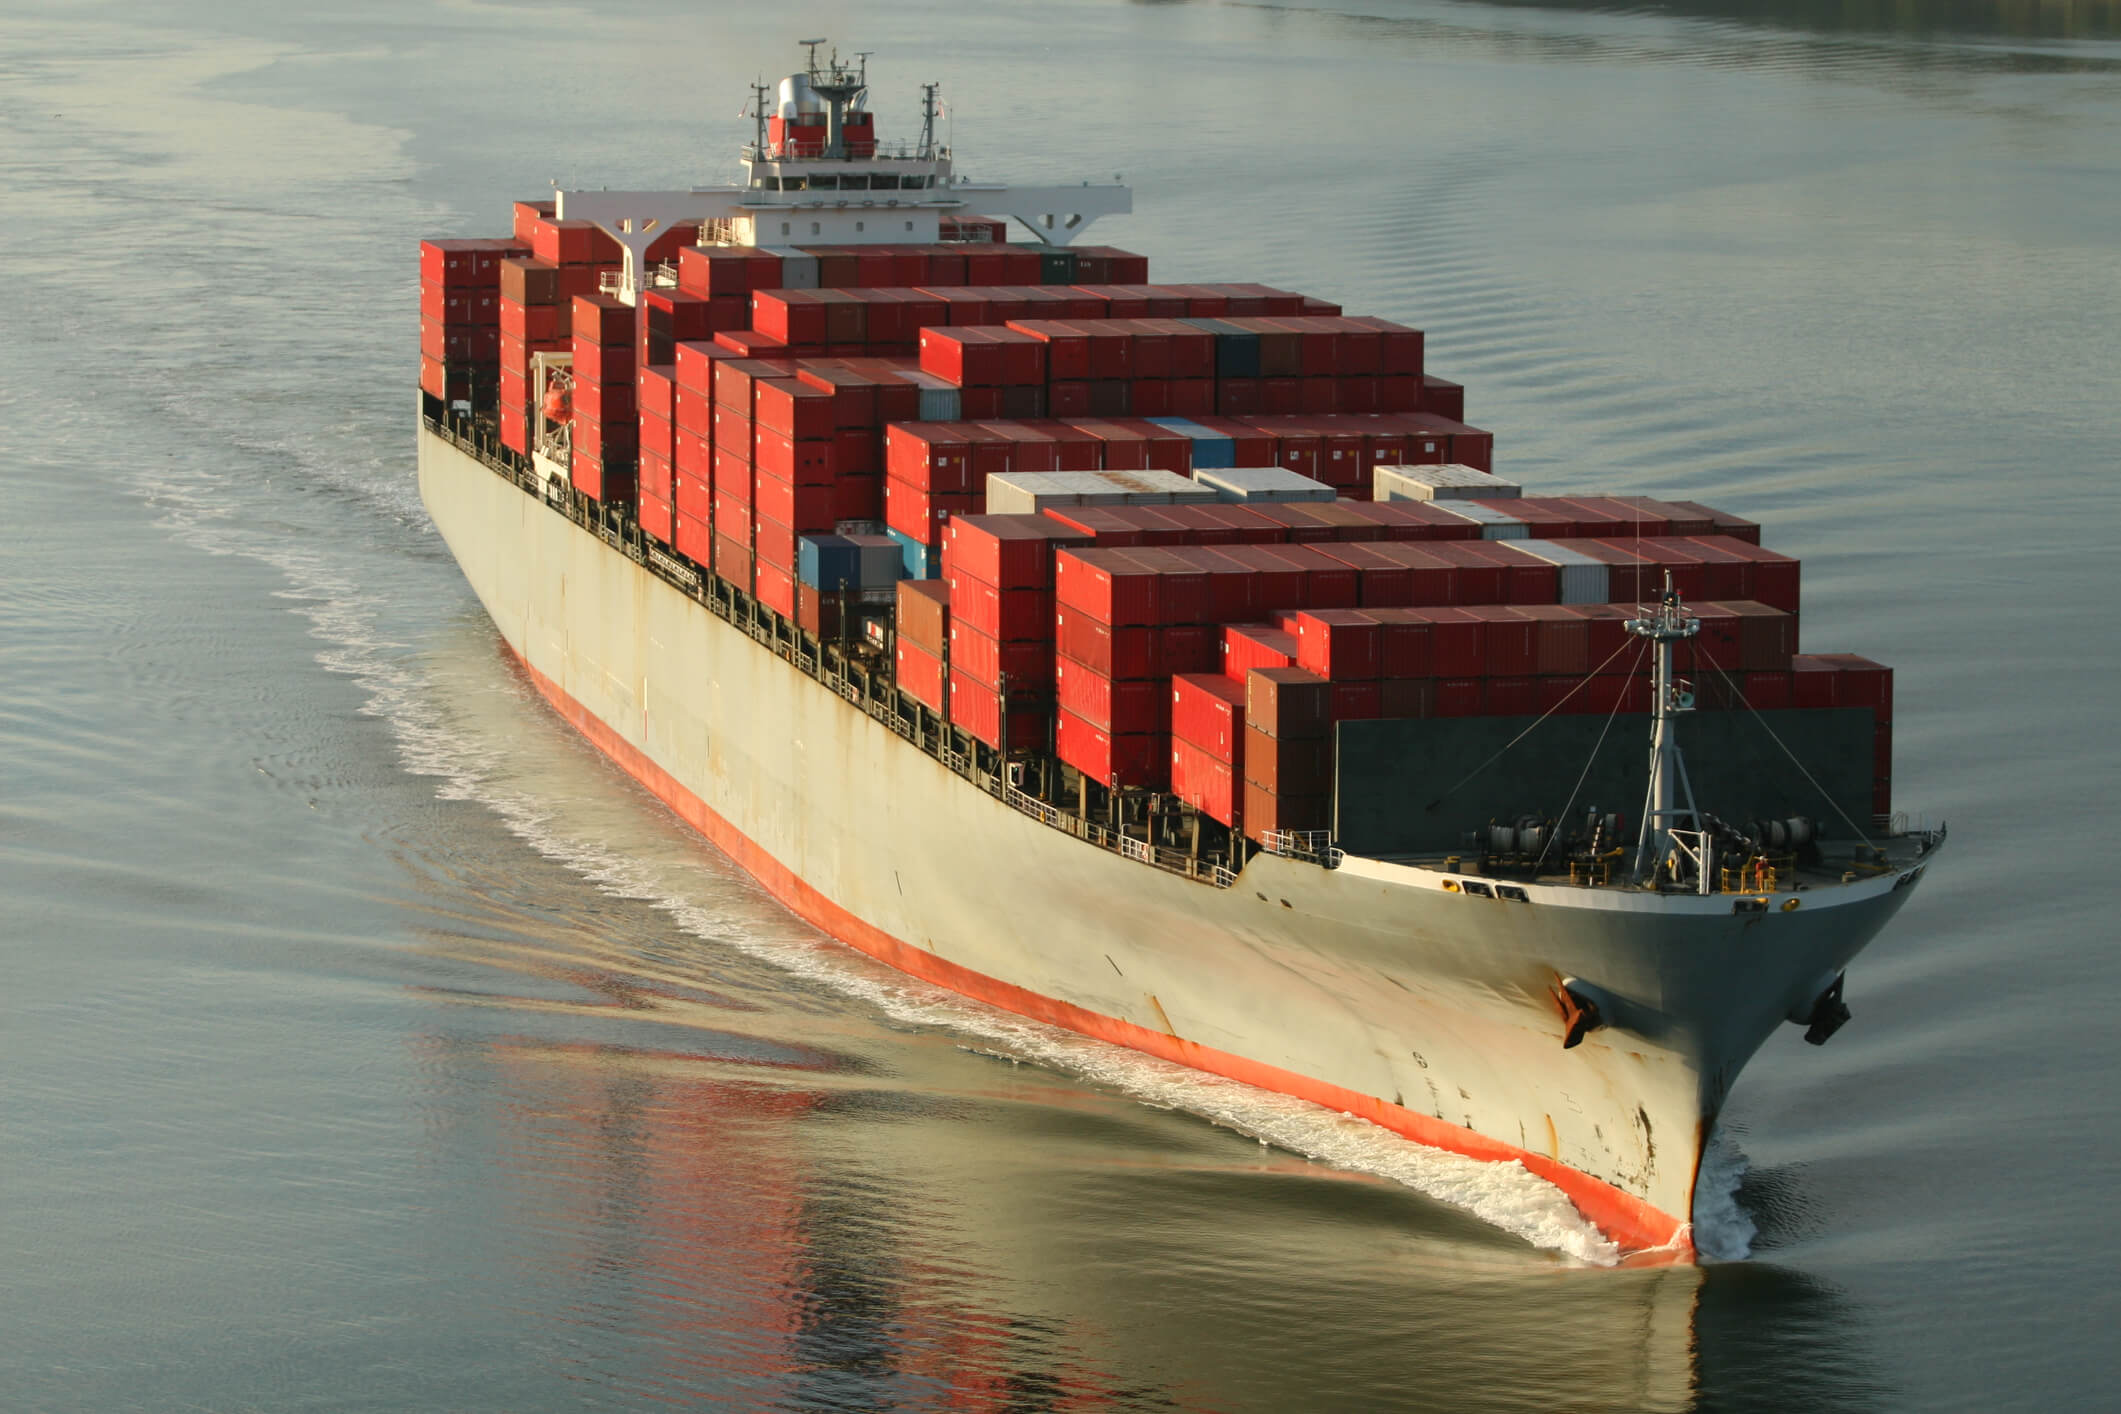 Large freight ship loaded with cargo.